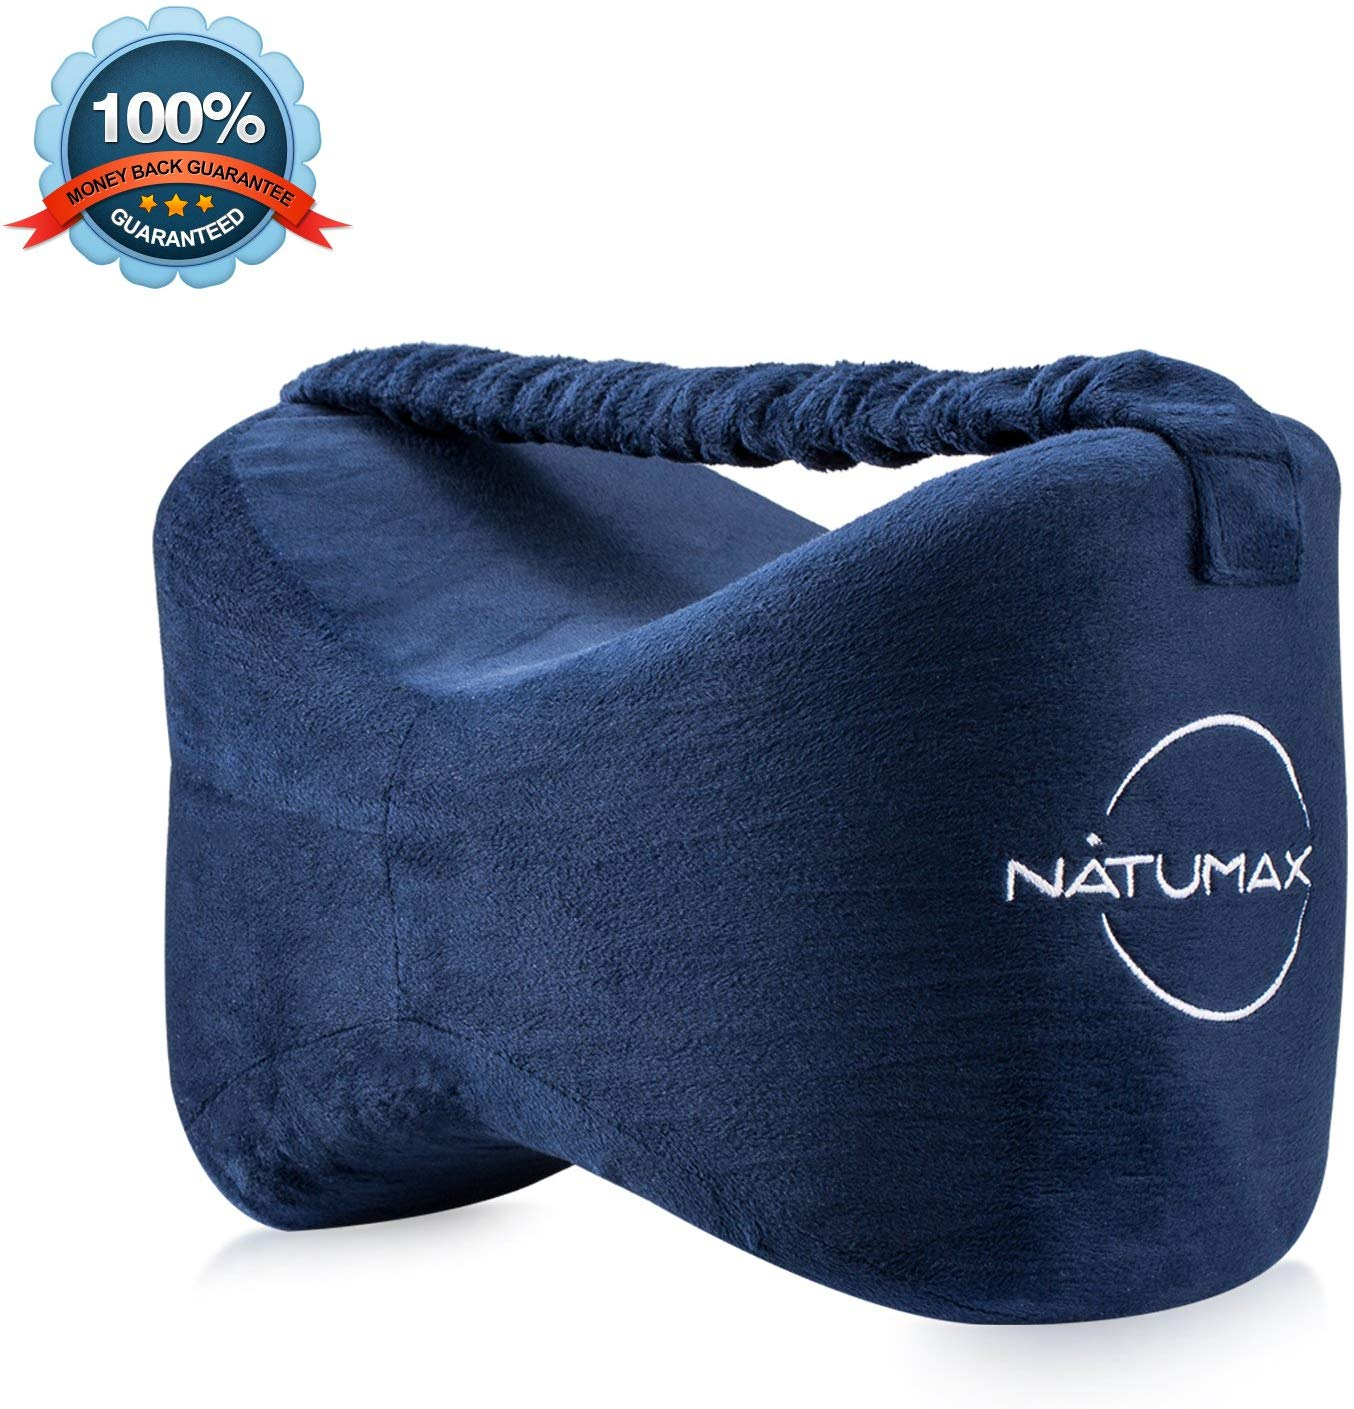 NATUMAX Best Knee Pillow review by www.dailysleep.org